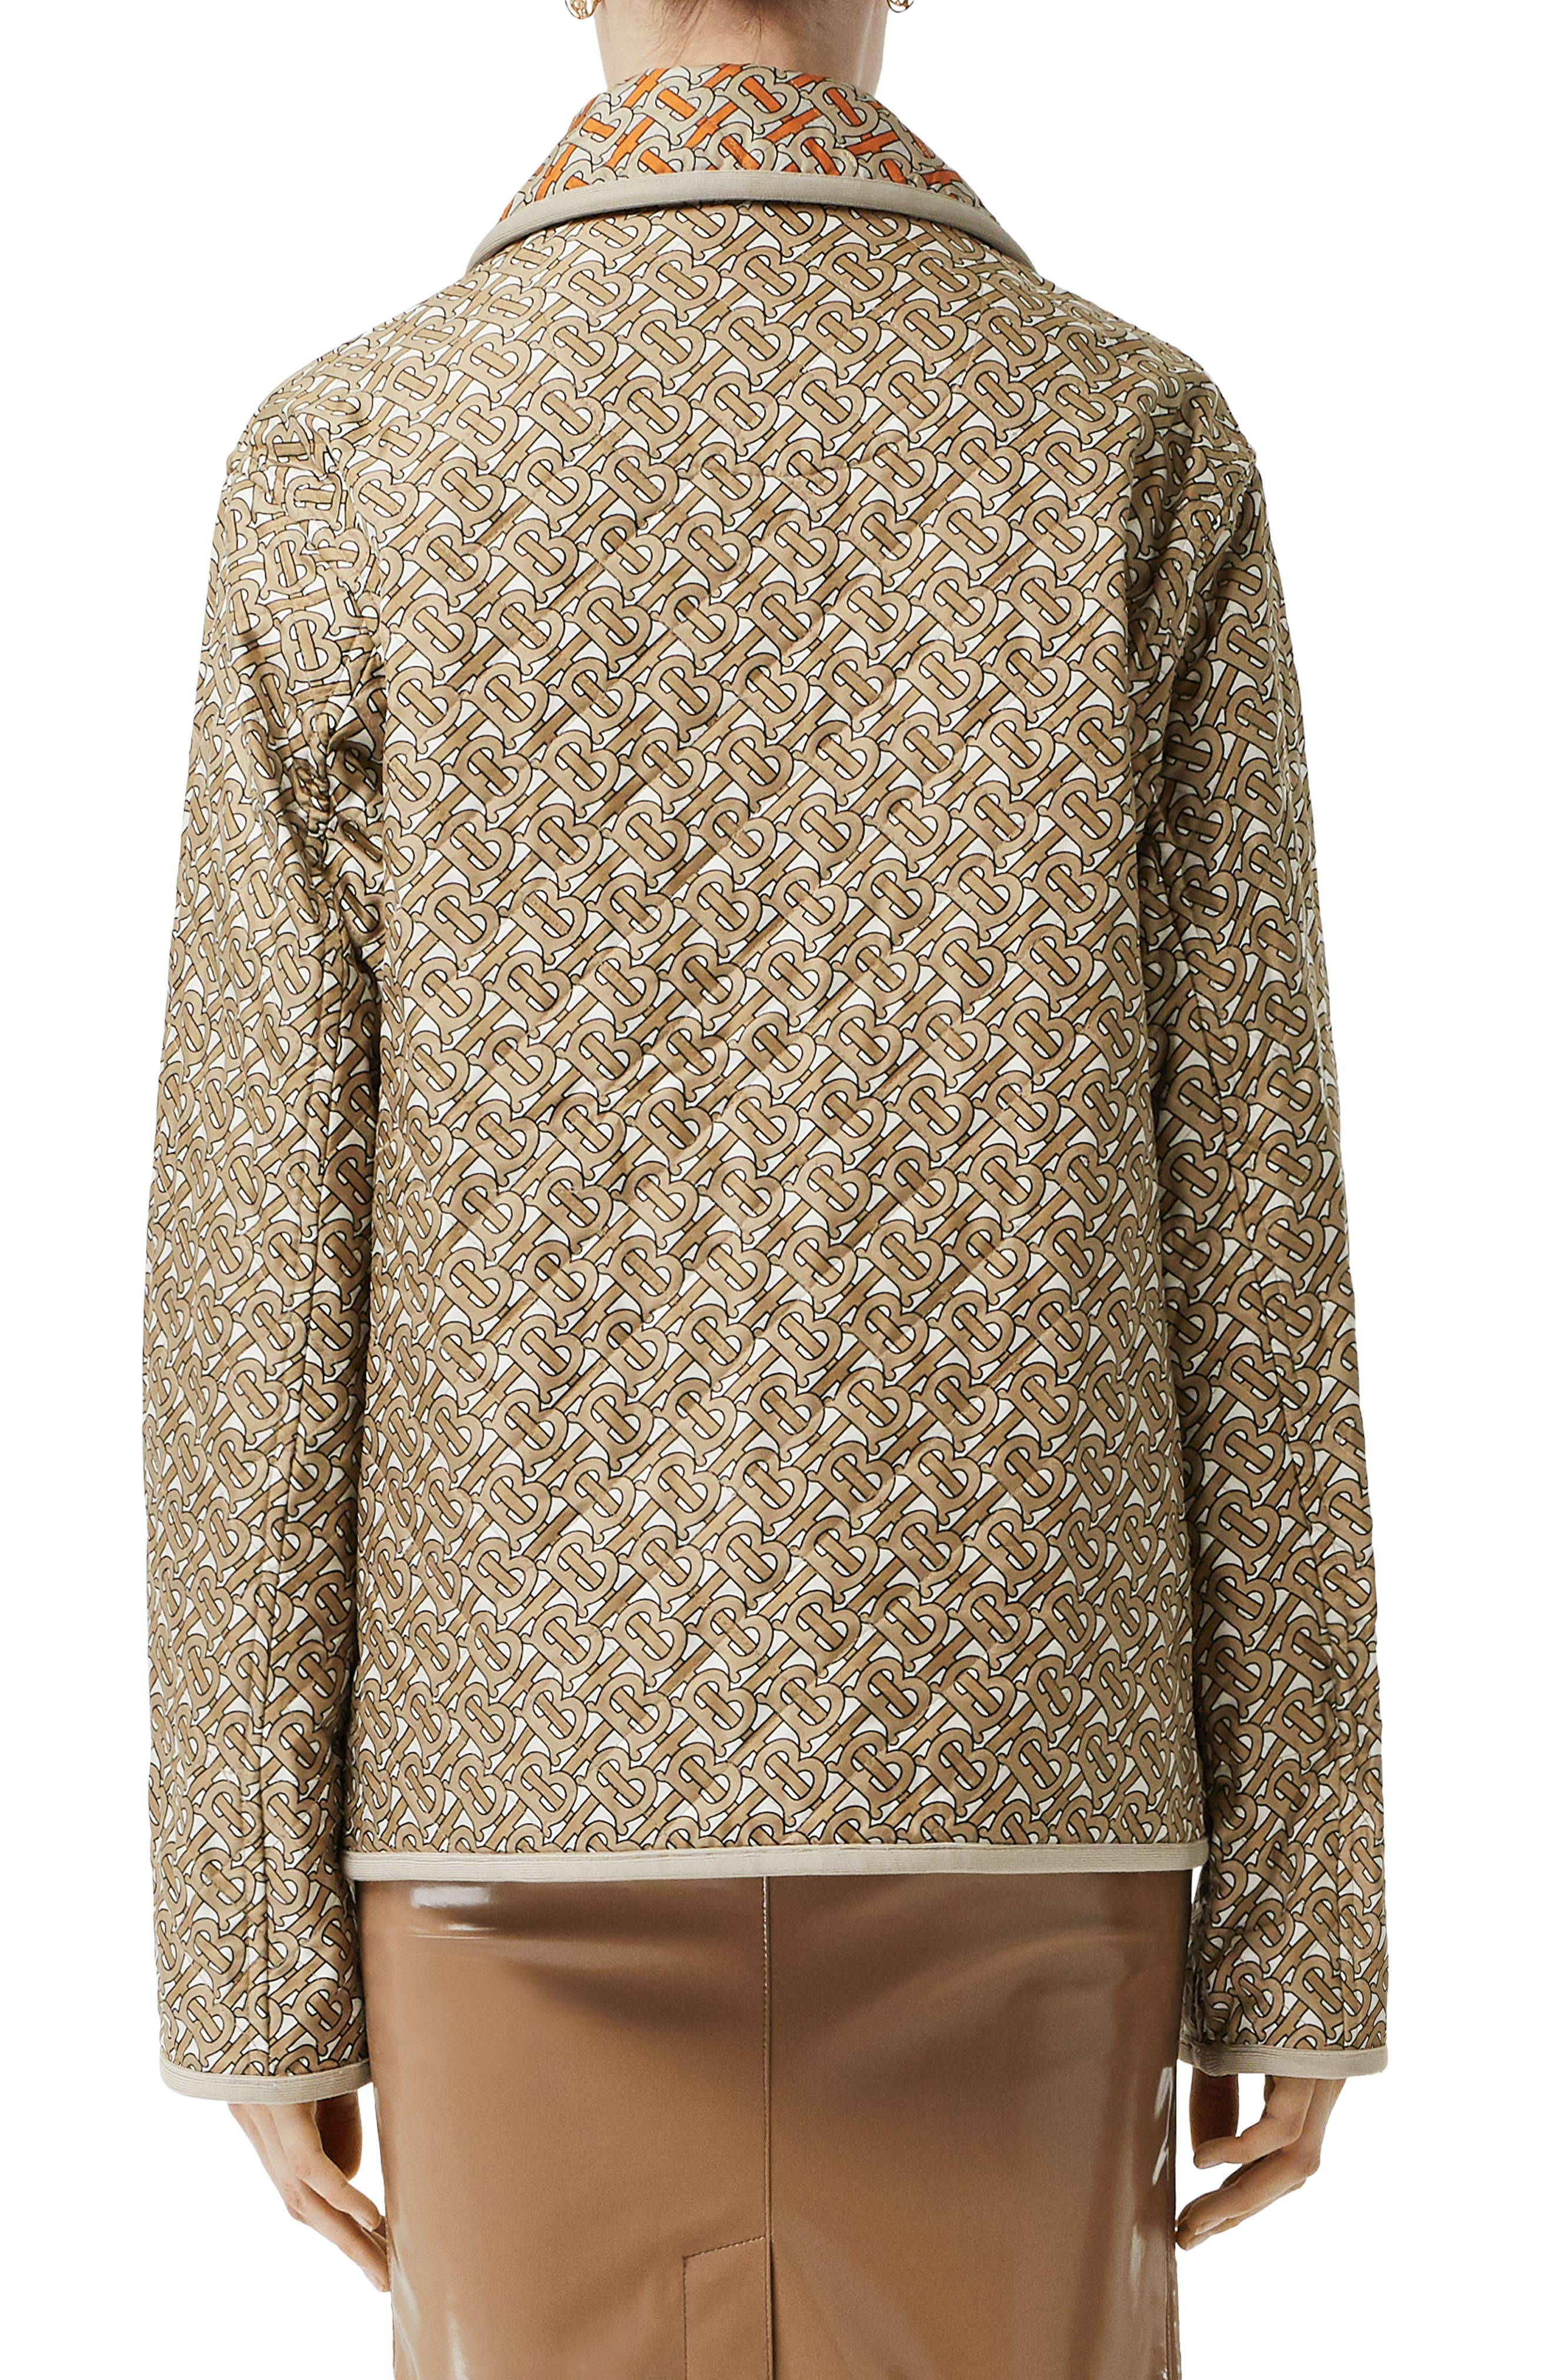 BURBERRY, Monogram Logo Print Quilted Silk Jacket, Alternate thumbnail 2, color, ARCHIVE BEIGE